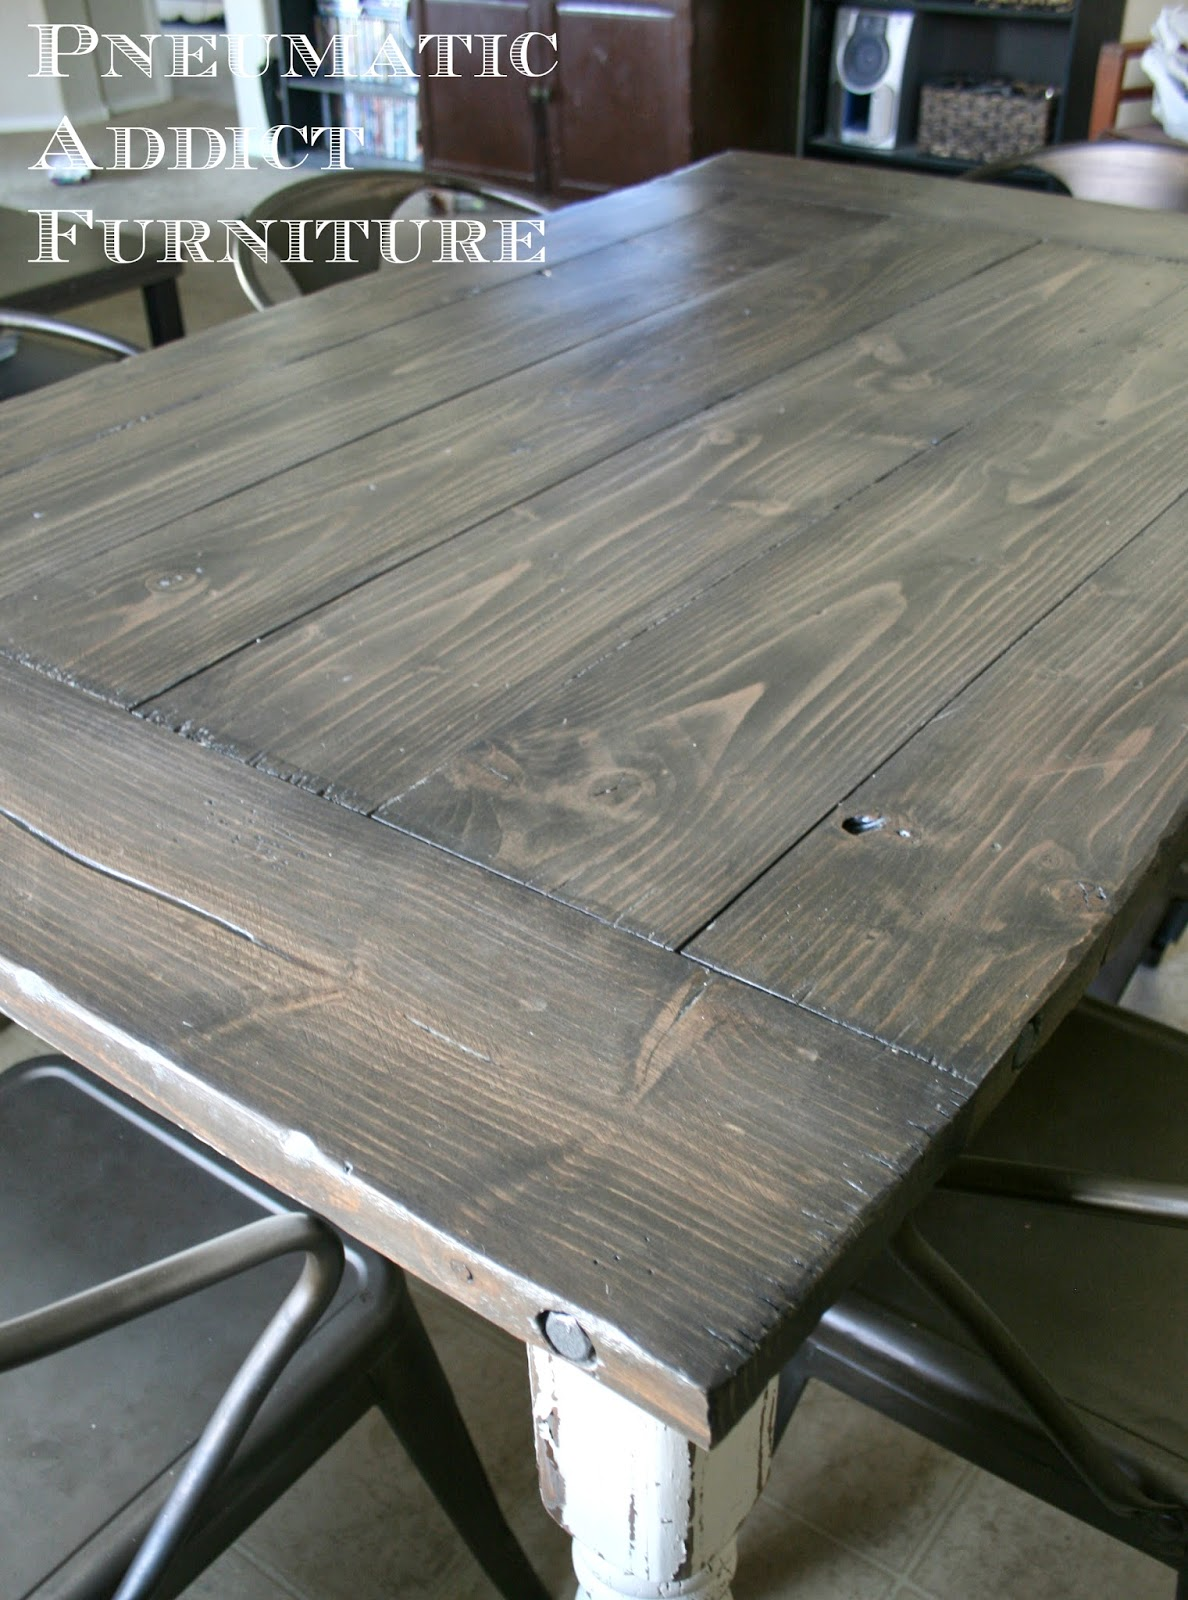 Industrial Farmhouse Table Pneumatic Addict